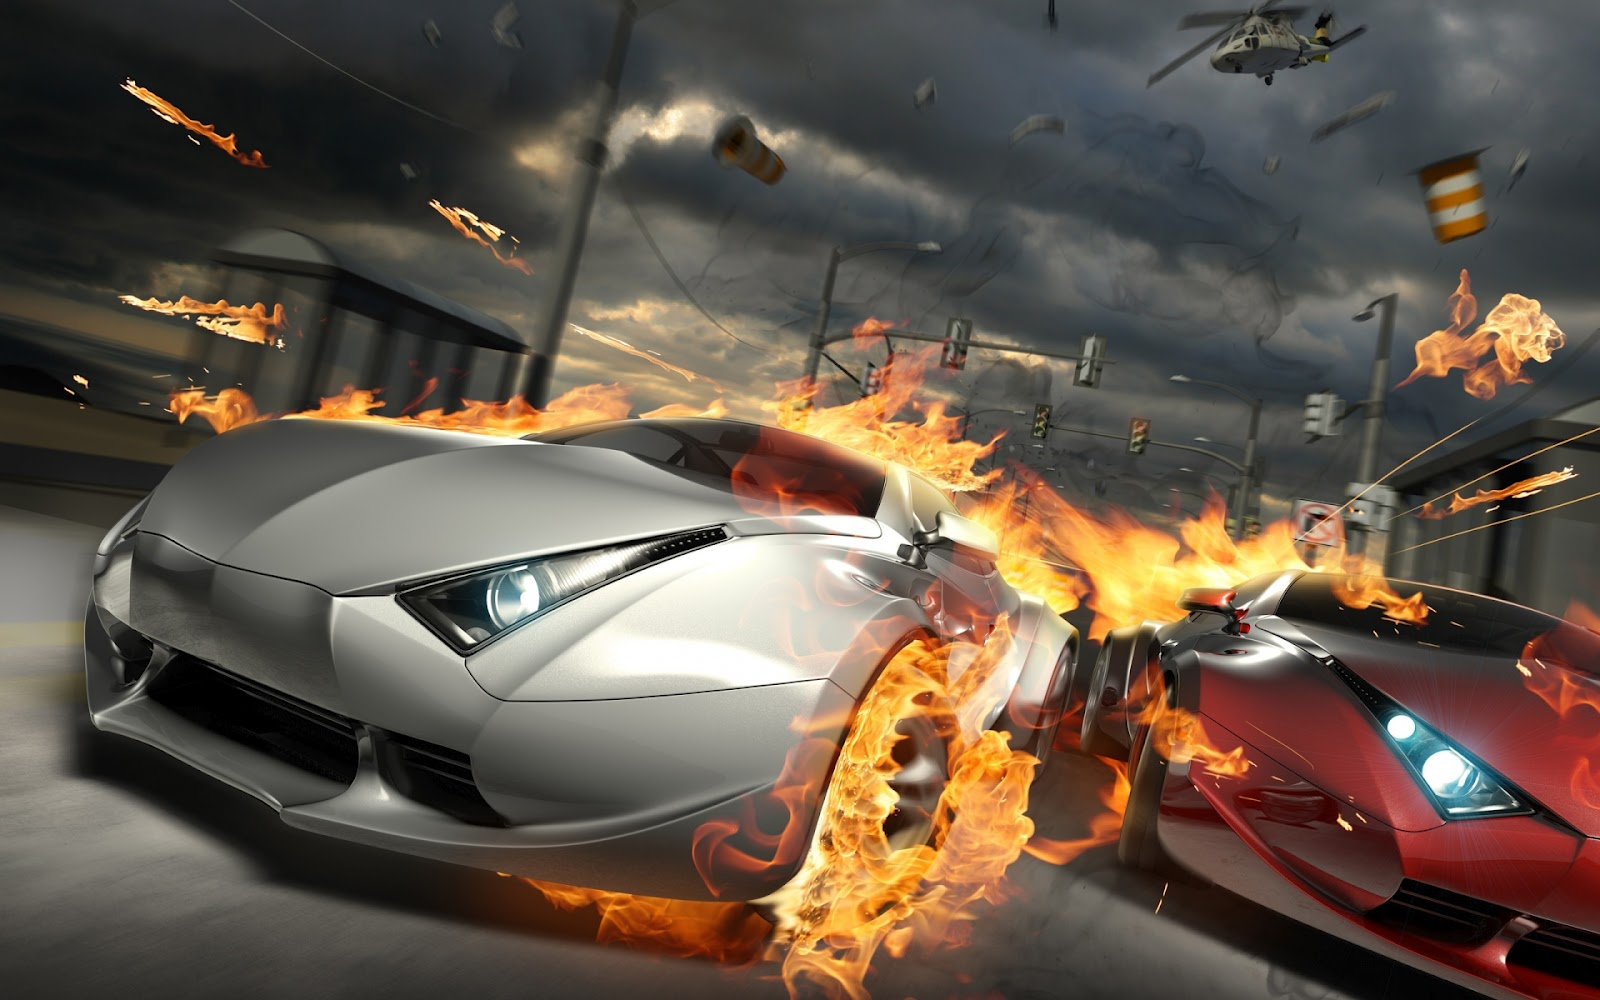 Beautiful Cars wallpapers 3d cars games download 1600x1000